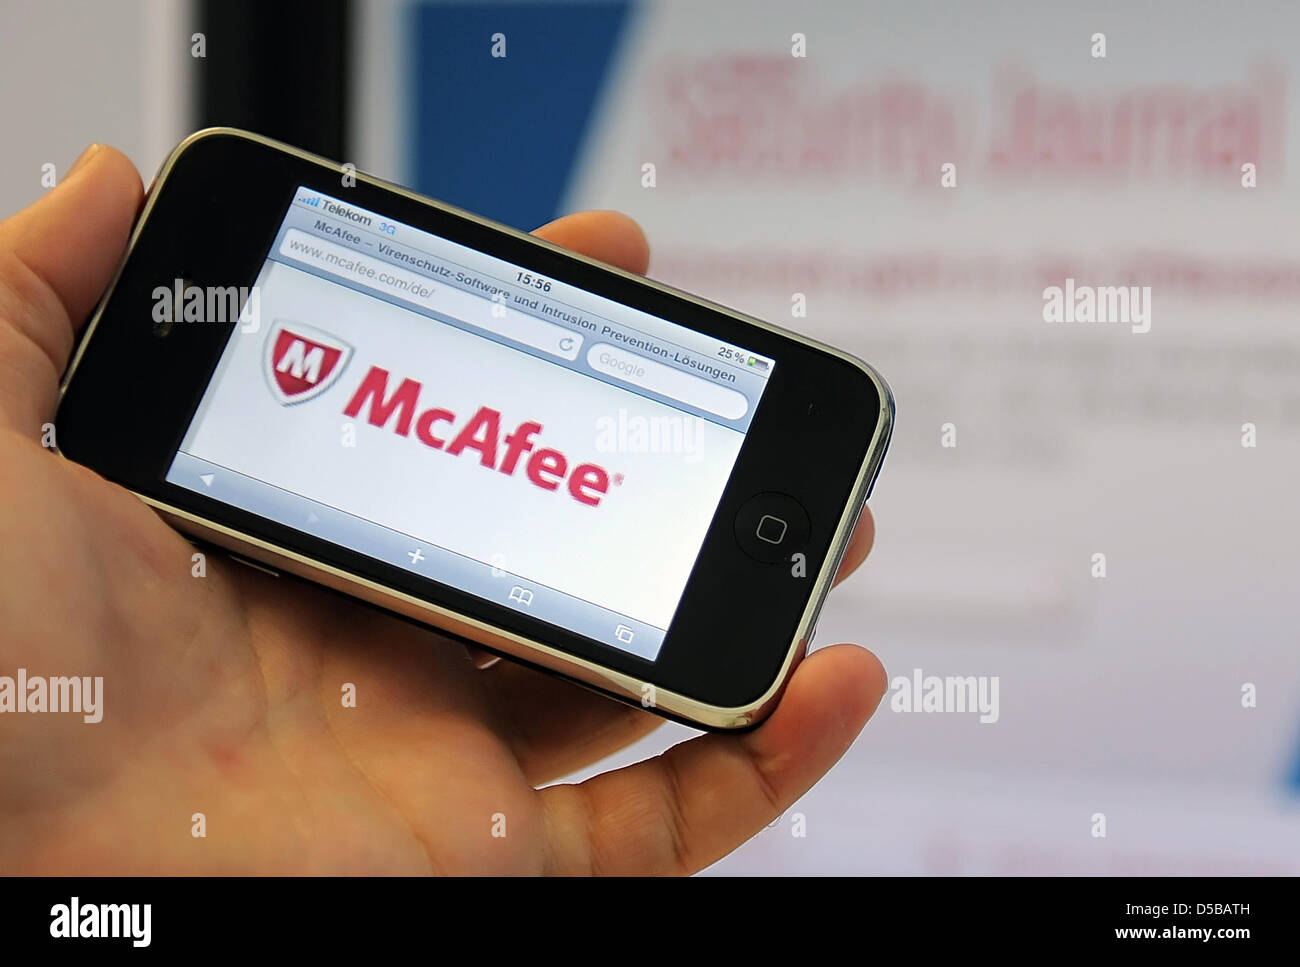 The logo of antivirus specialist McAfee is captured on an iPhone